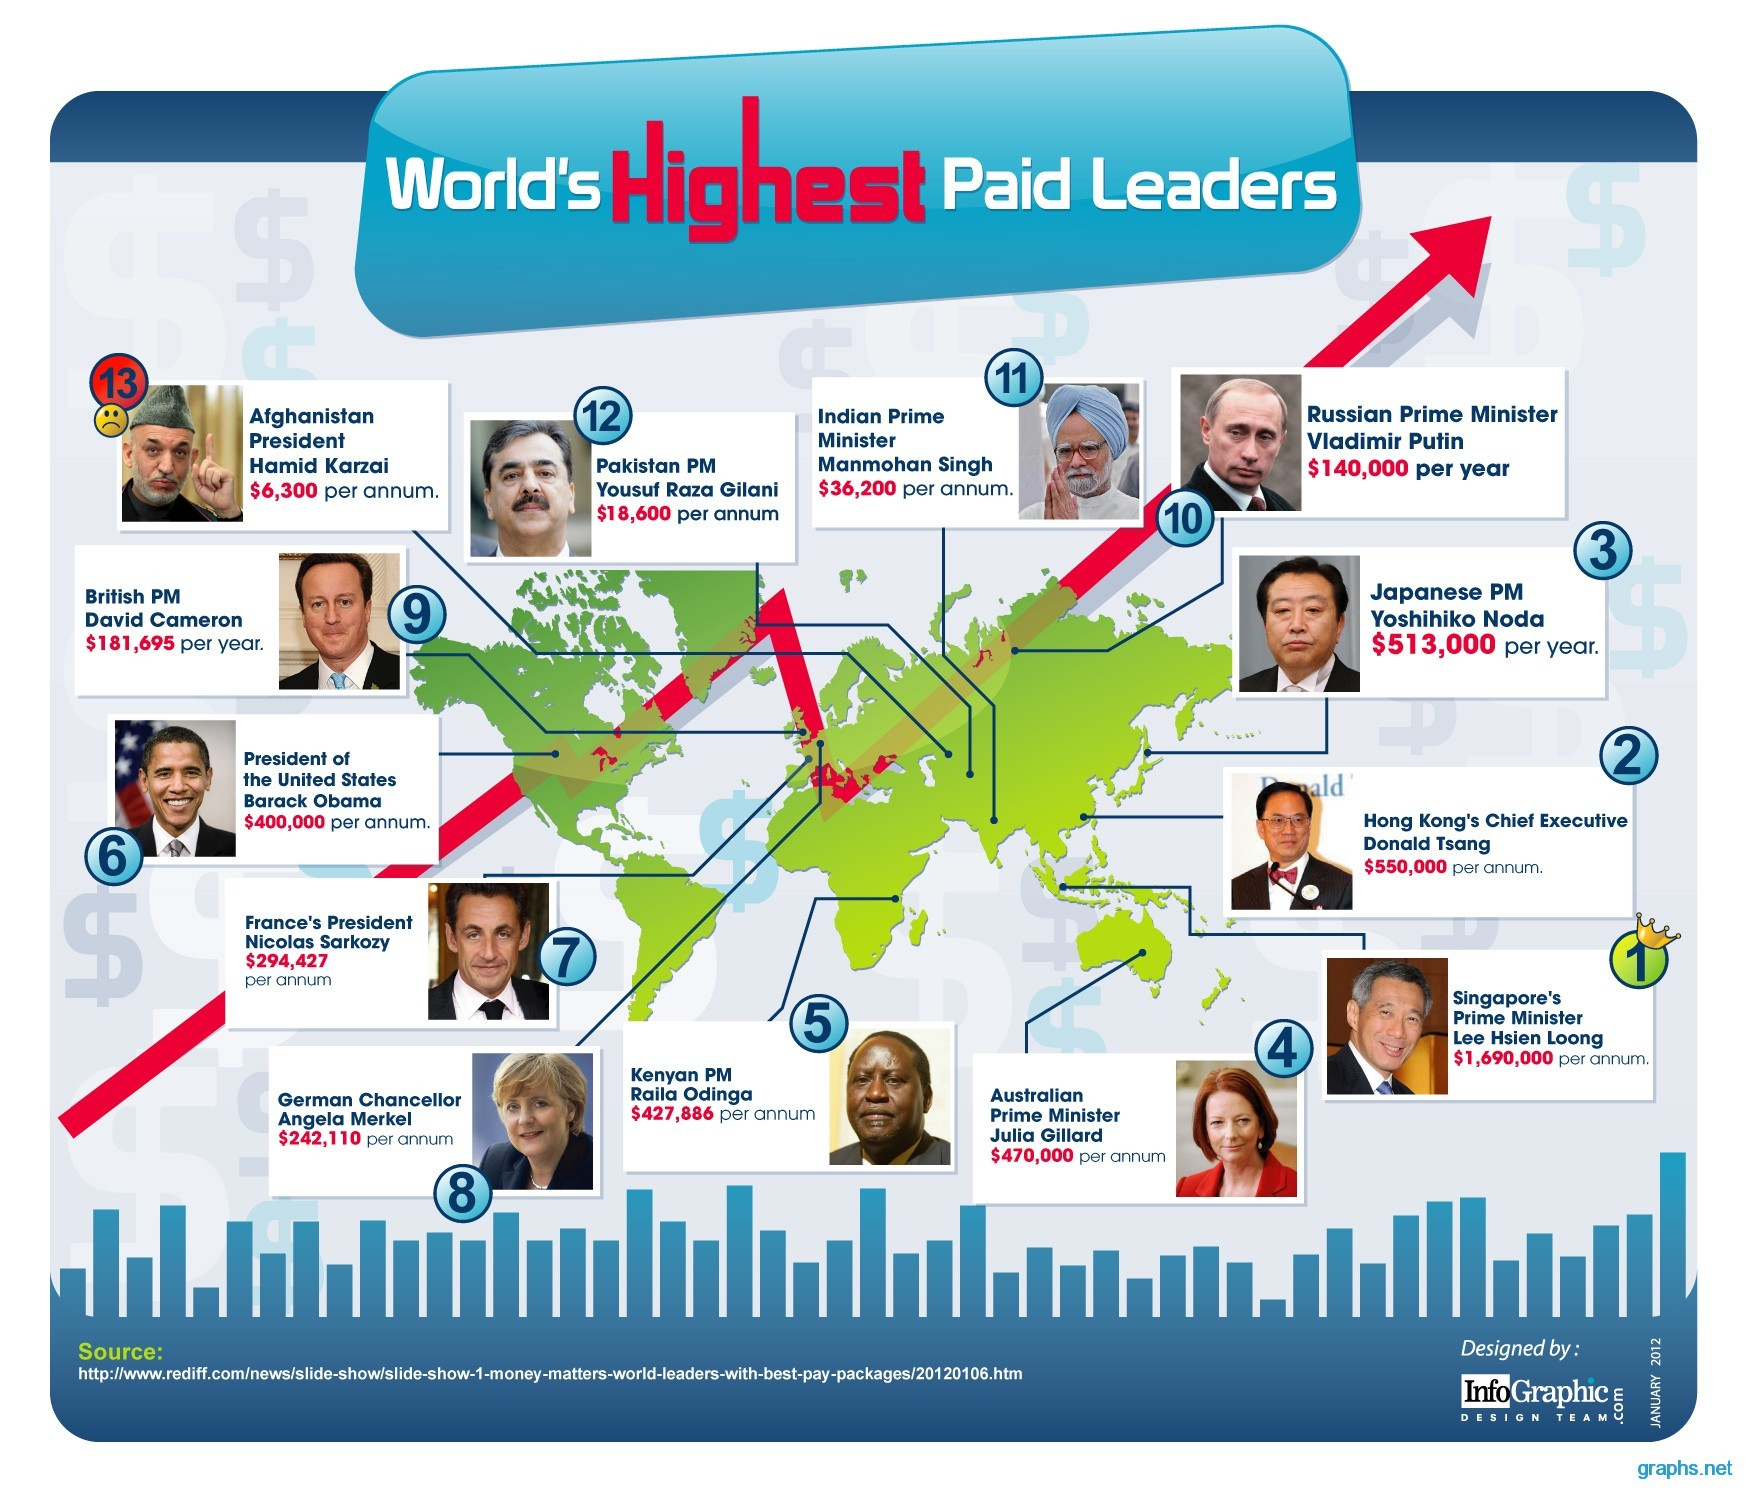 Highest Paid Leaders In The World